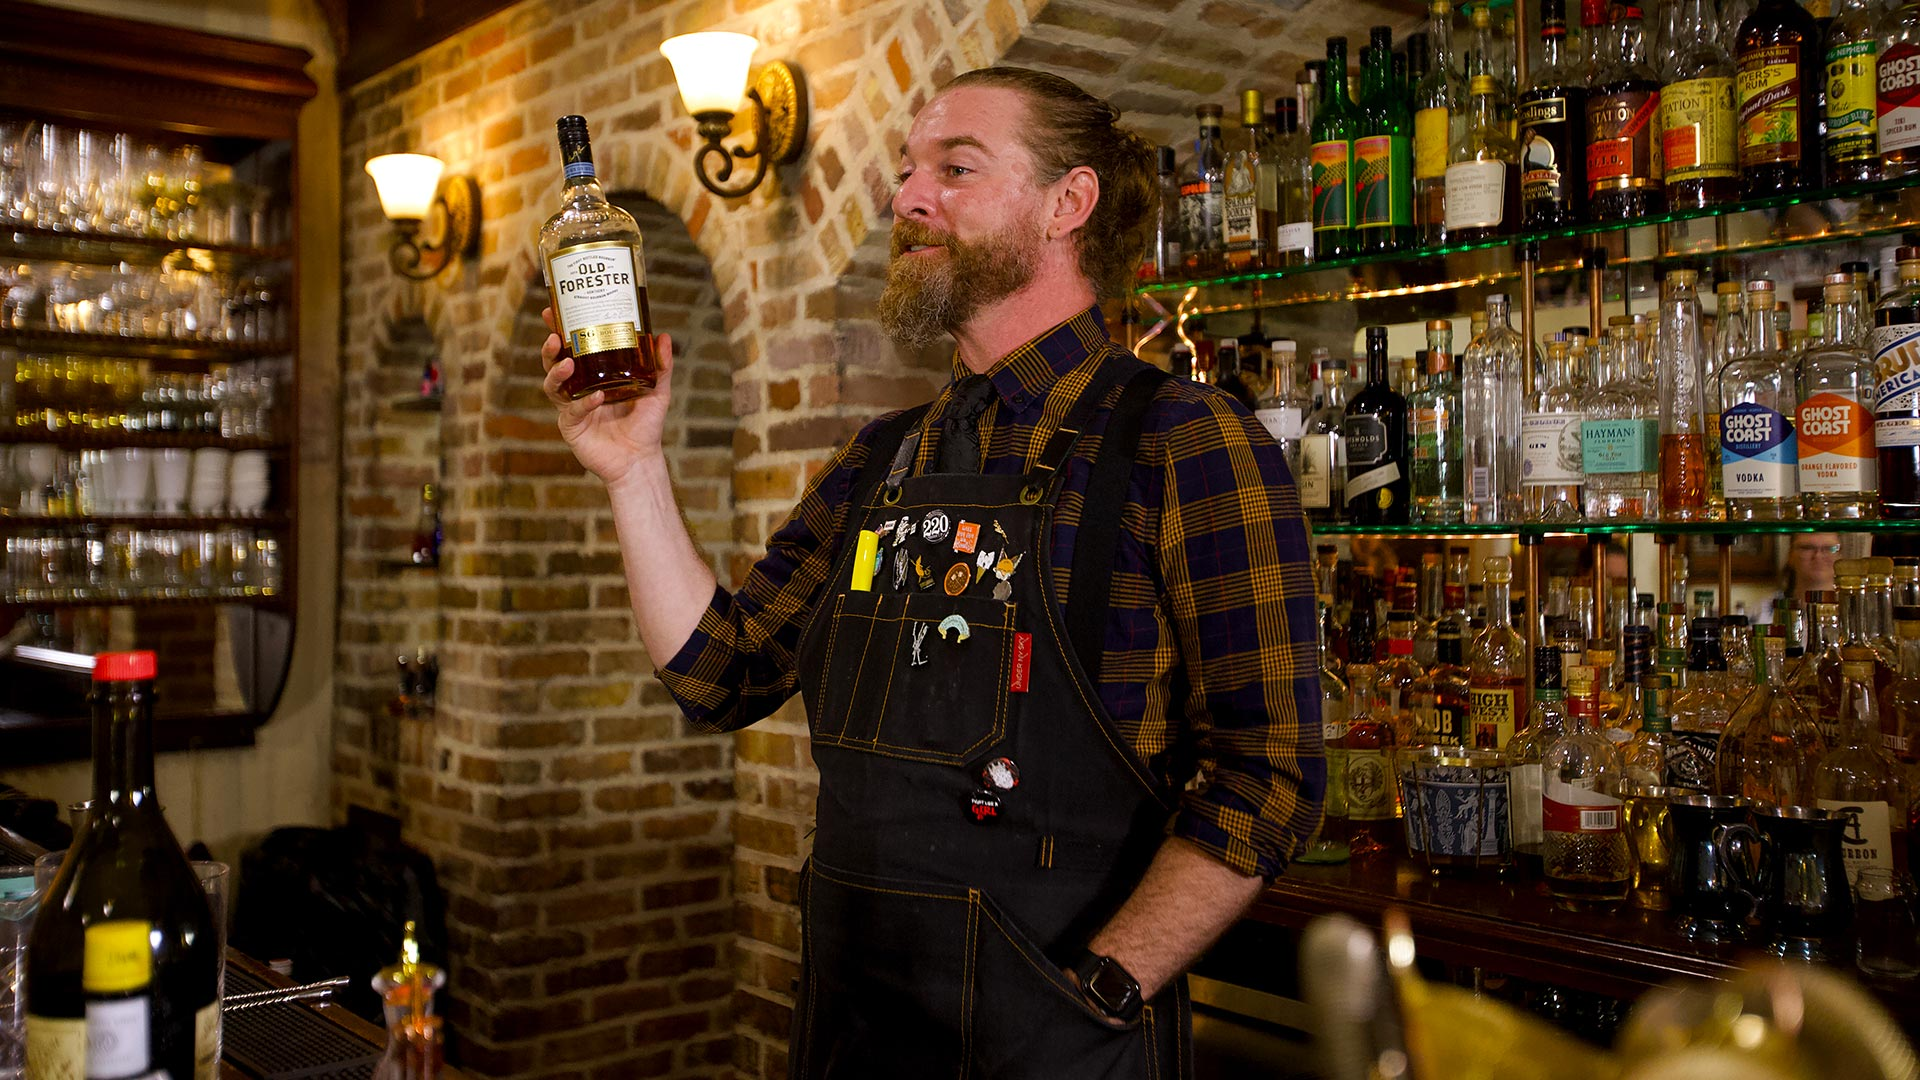 Instructor at the Whiskey Tasting Class at Savannah Speakeasy